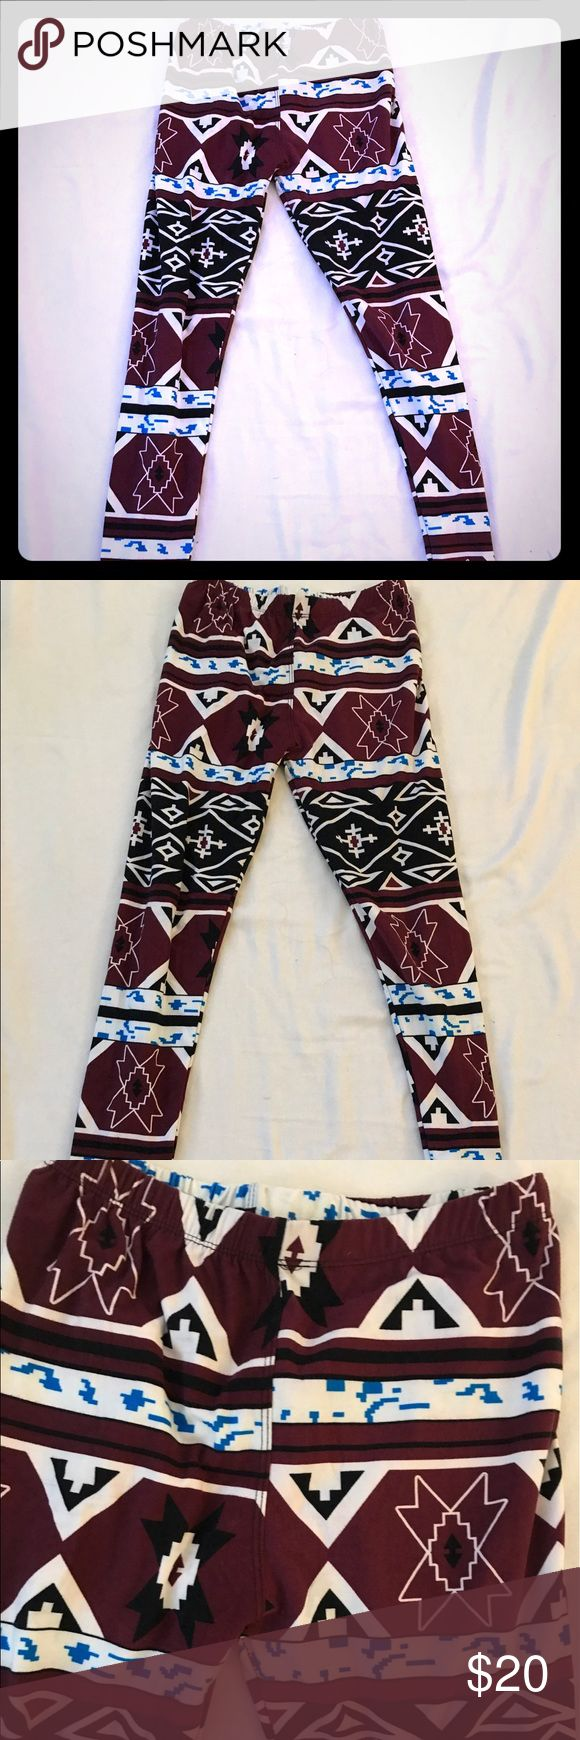 🎊cute Euc Aztec print leggings Euc Aztec print leggings Pants Leggings